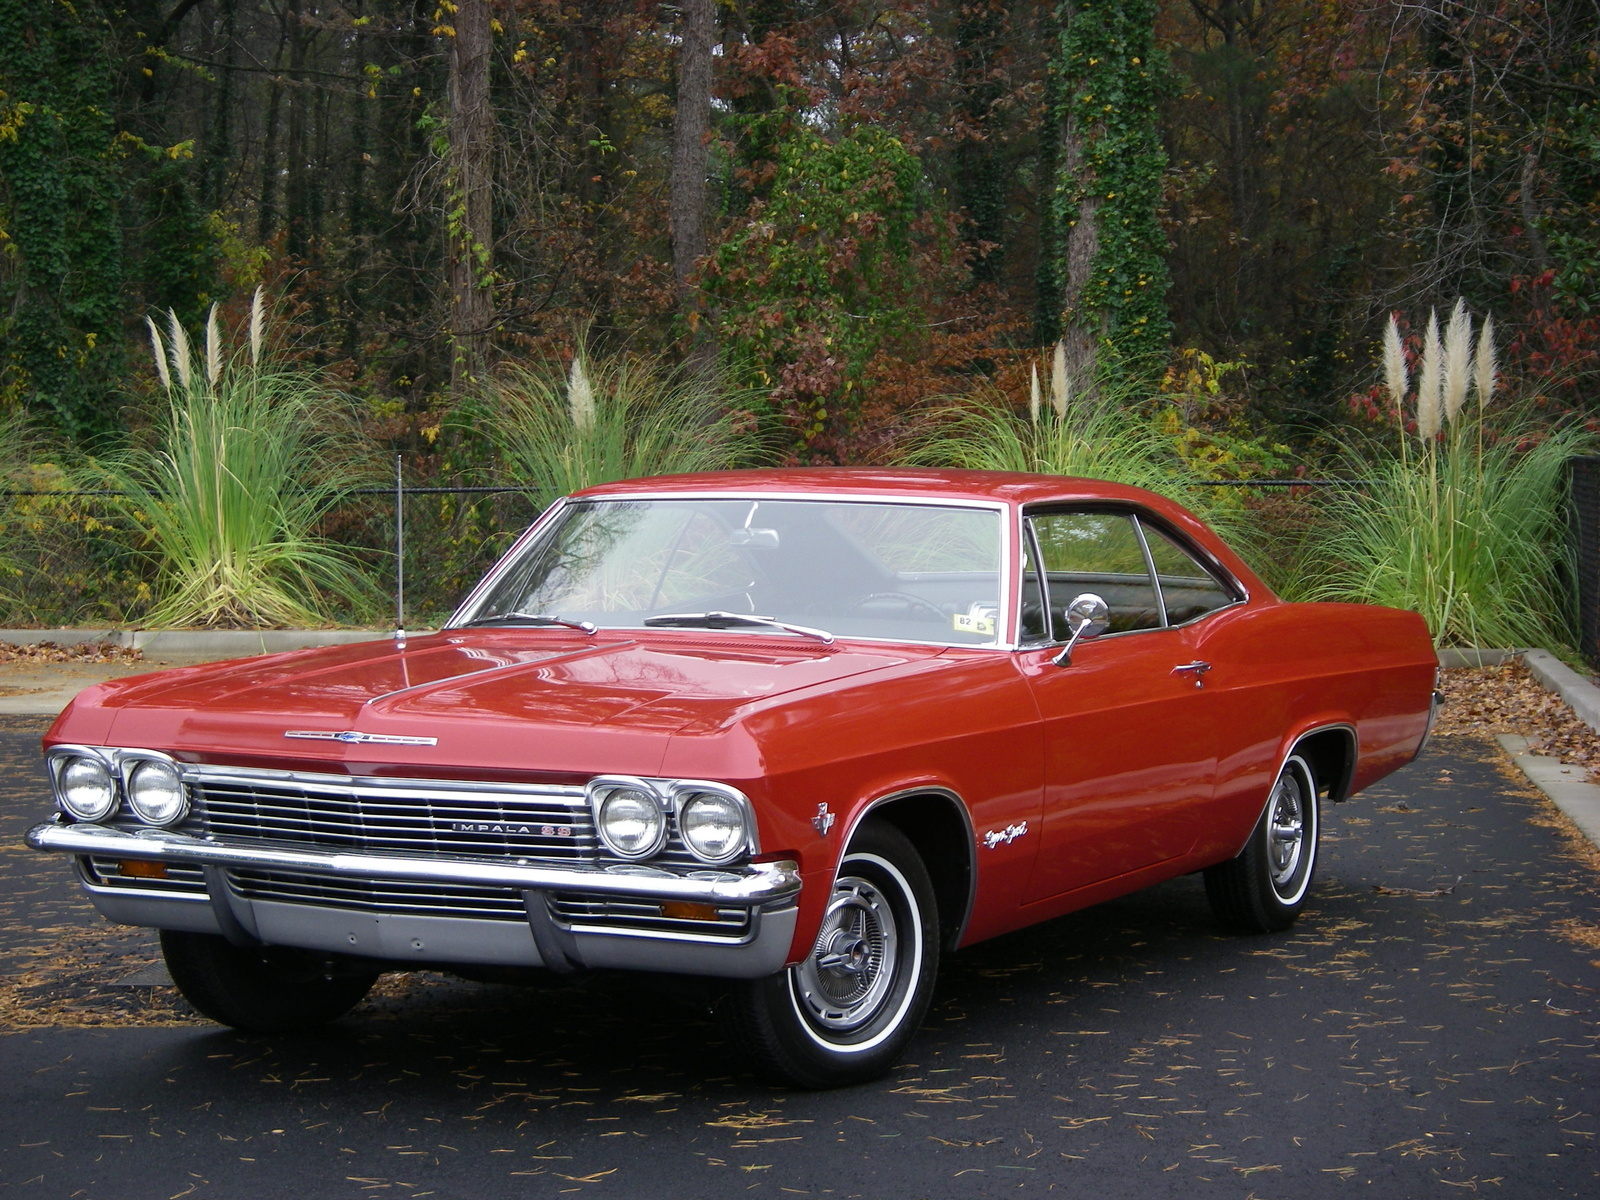 1965 Chevrolet Impala, 1965 Impala SS, all-original, 327/300, Muncie 4-speed, 36000 miles since new., interior, exterior